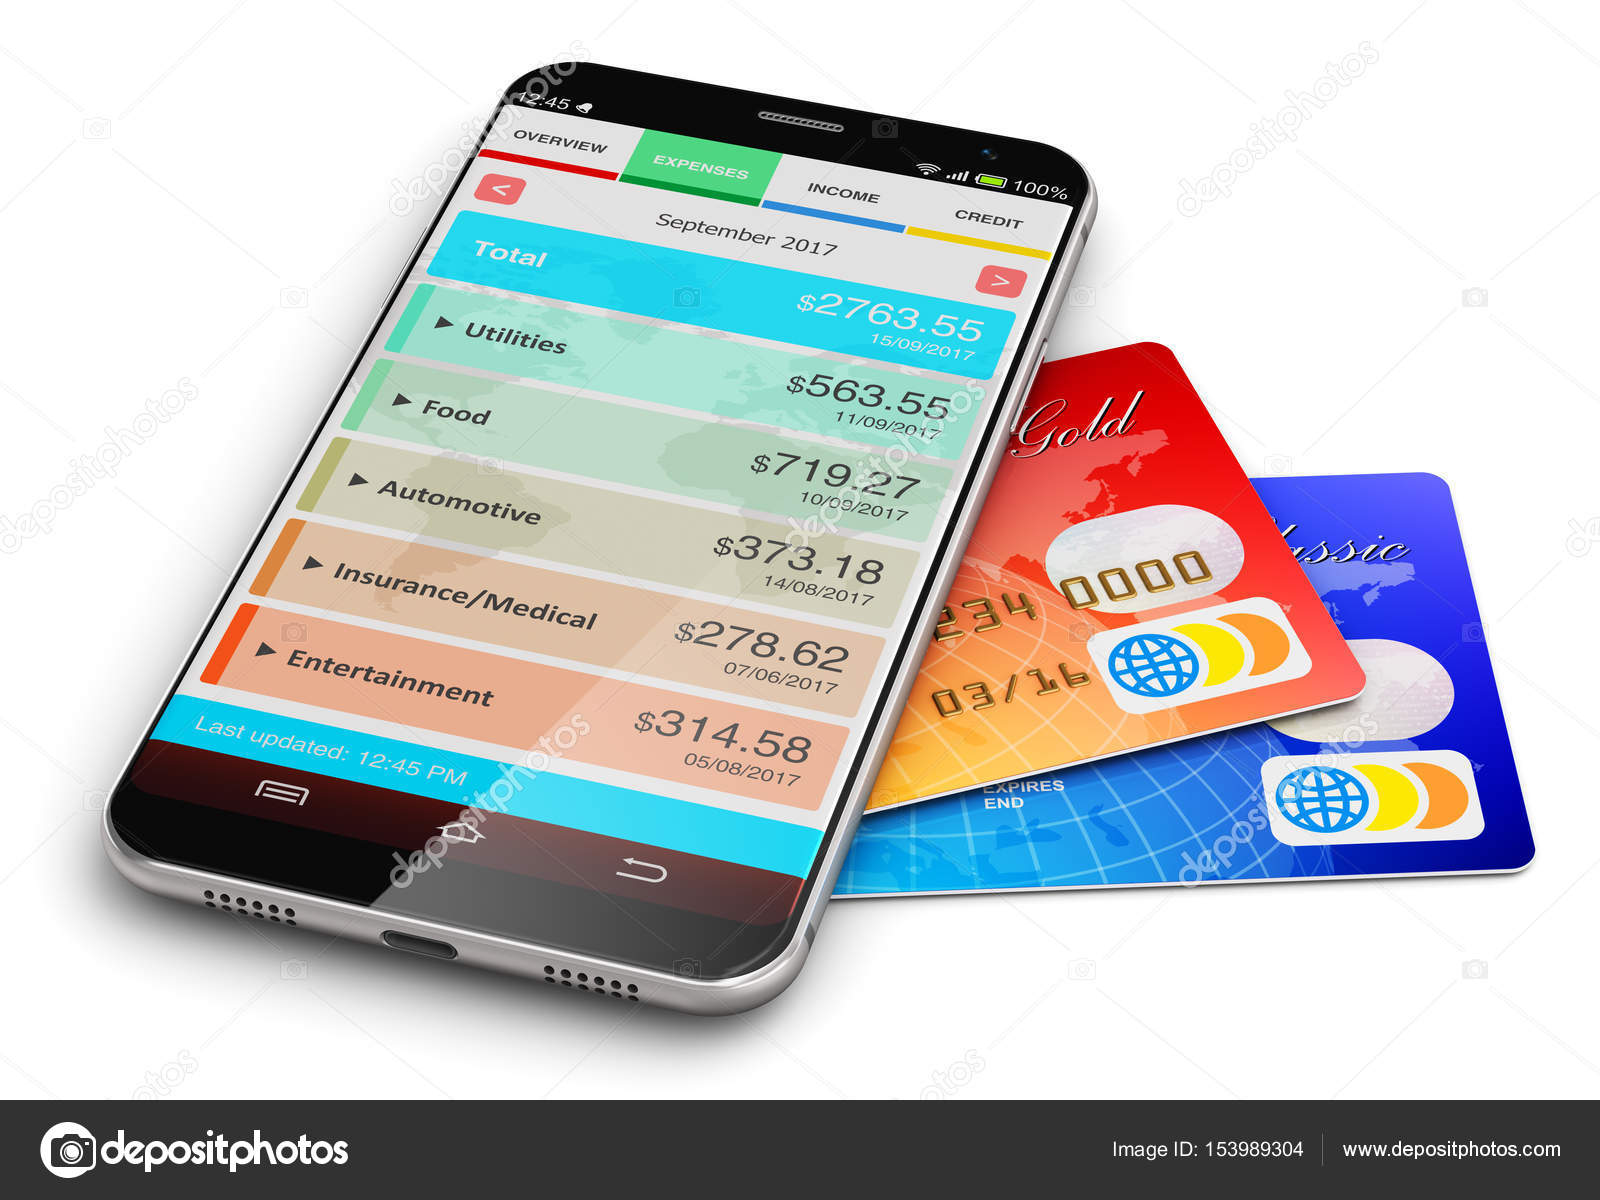 Smartphone With Financial Manager App And Bank Credit Cards Stock